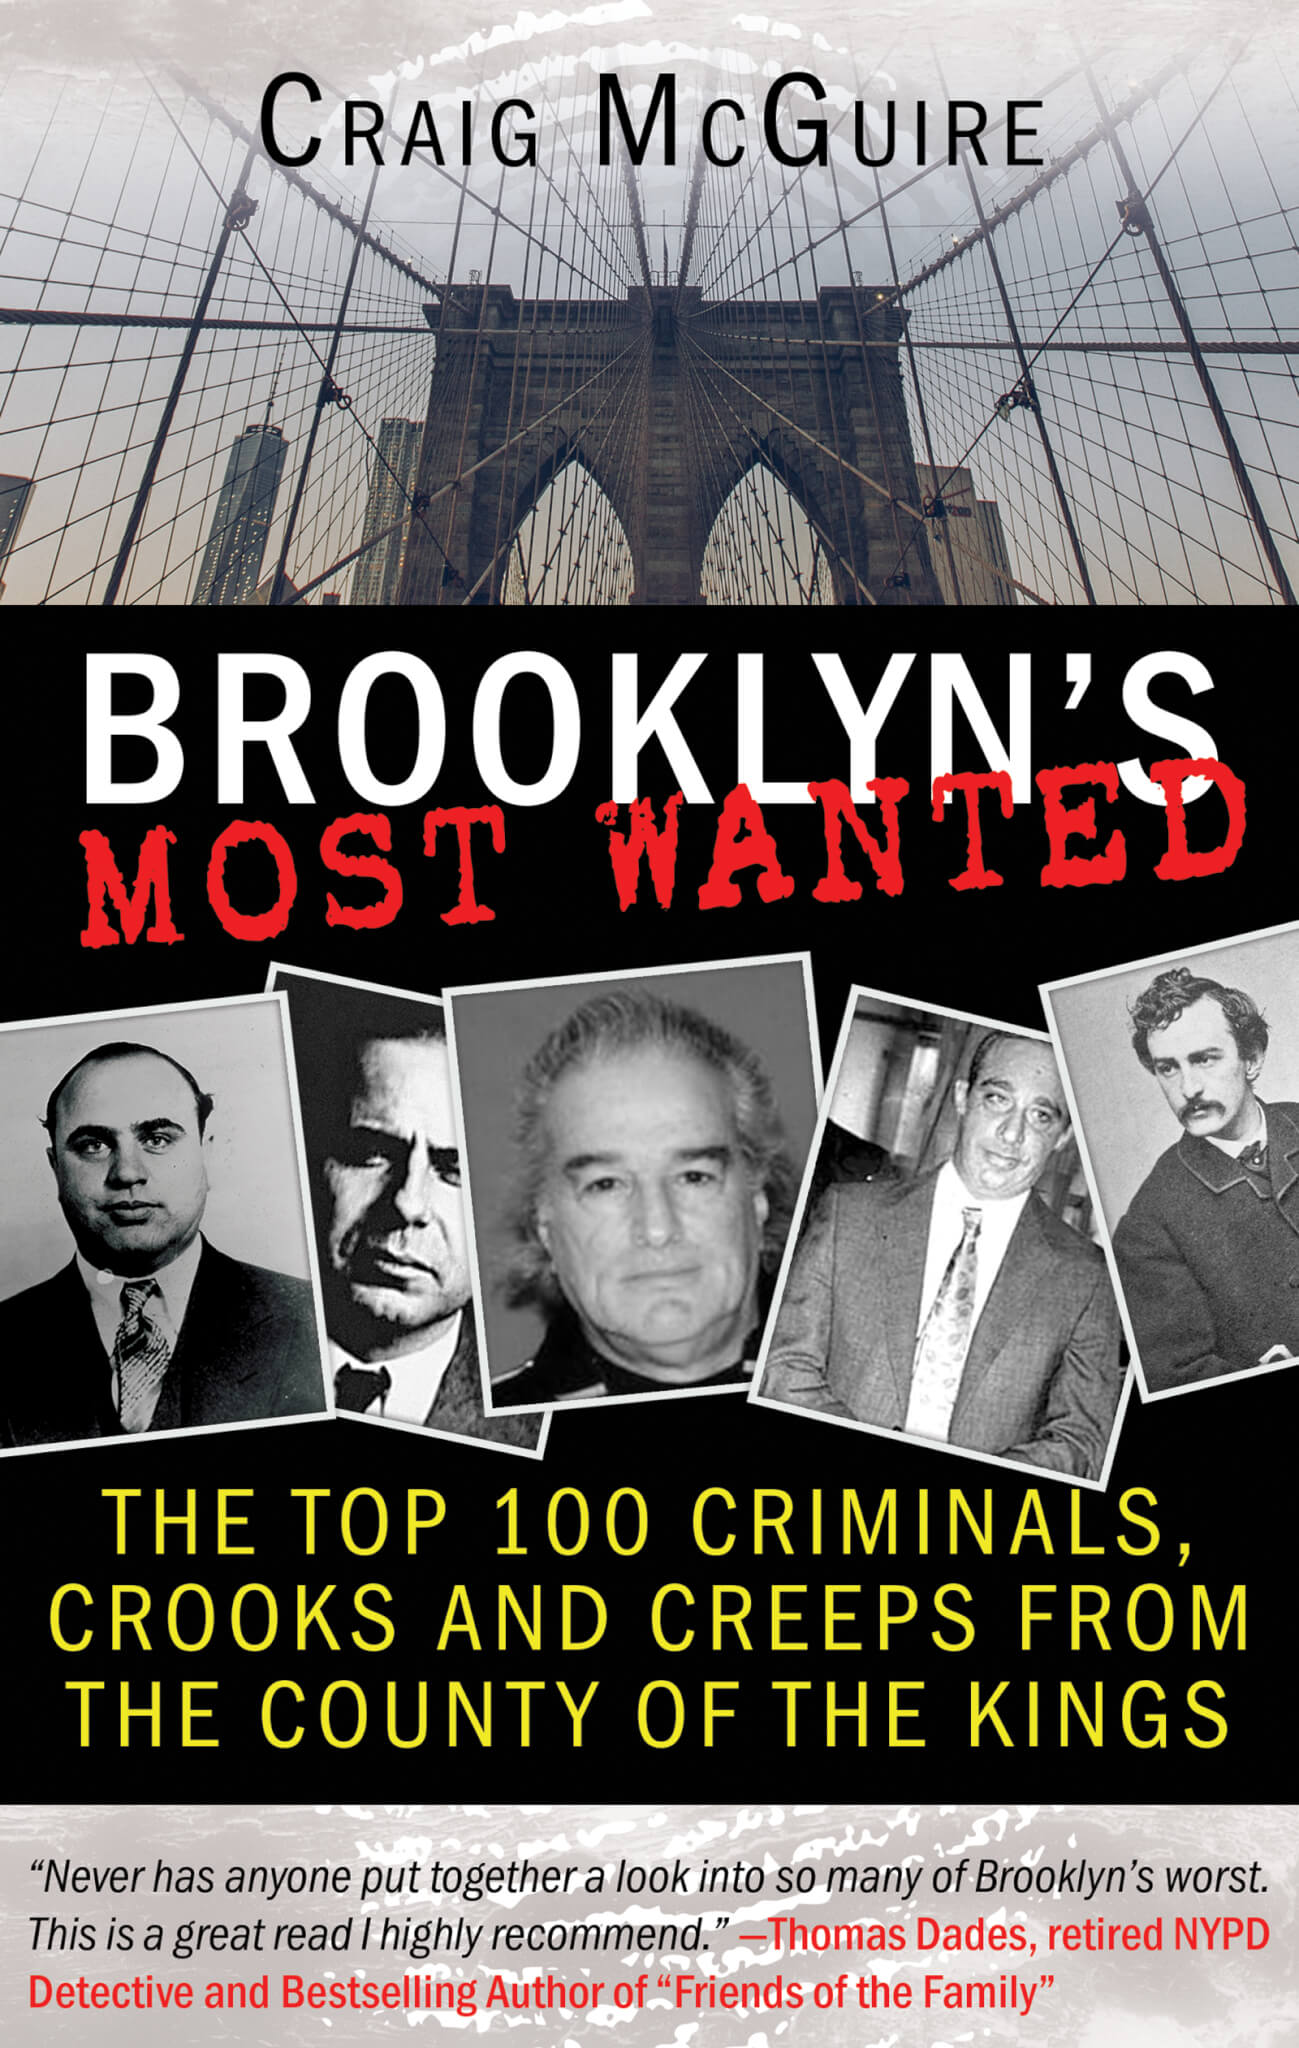 BROOKLYN'S MOST WANTED: Ranking the Top 100 Most Notorious Criminals, Crooks and Creeps from the County of the Kings Audio Books Available